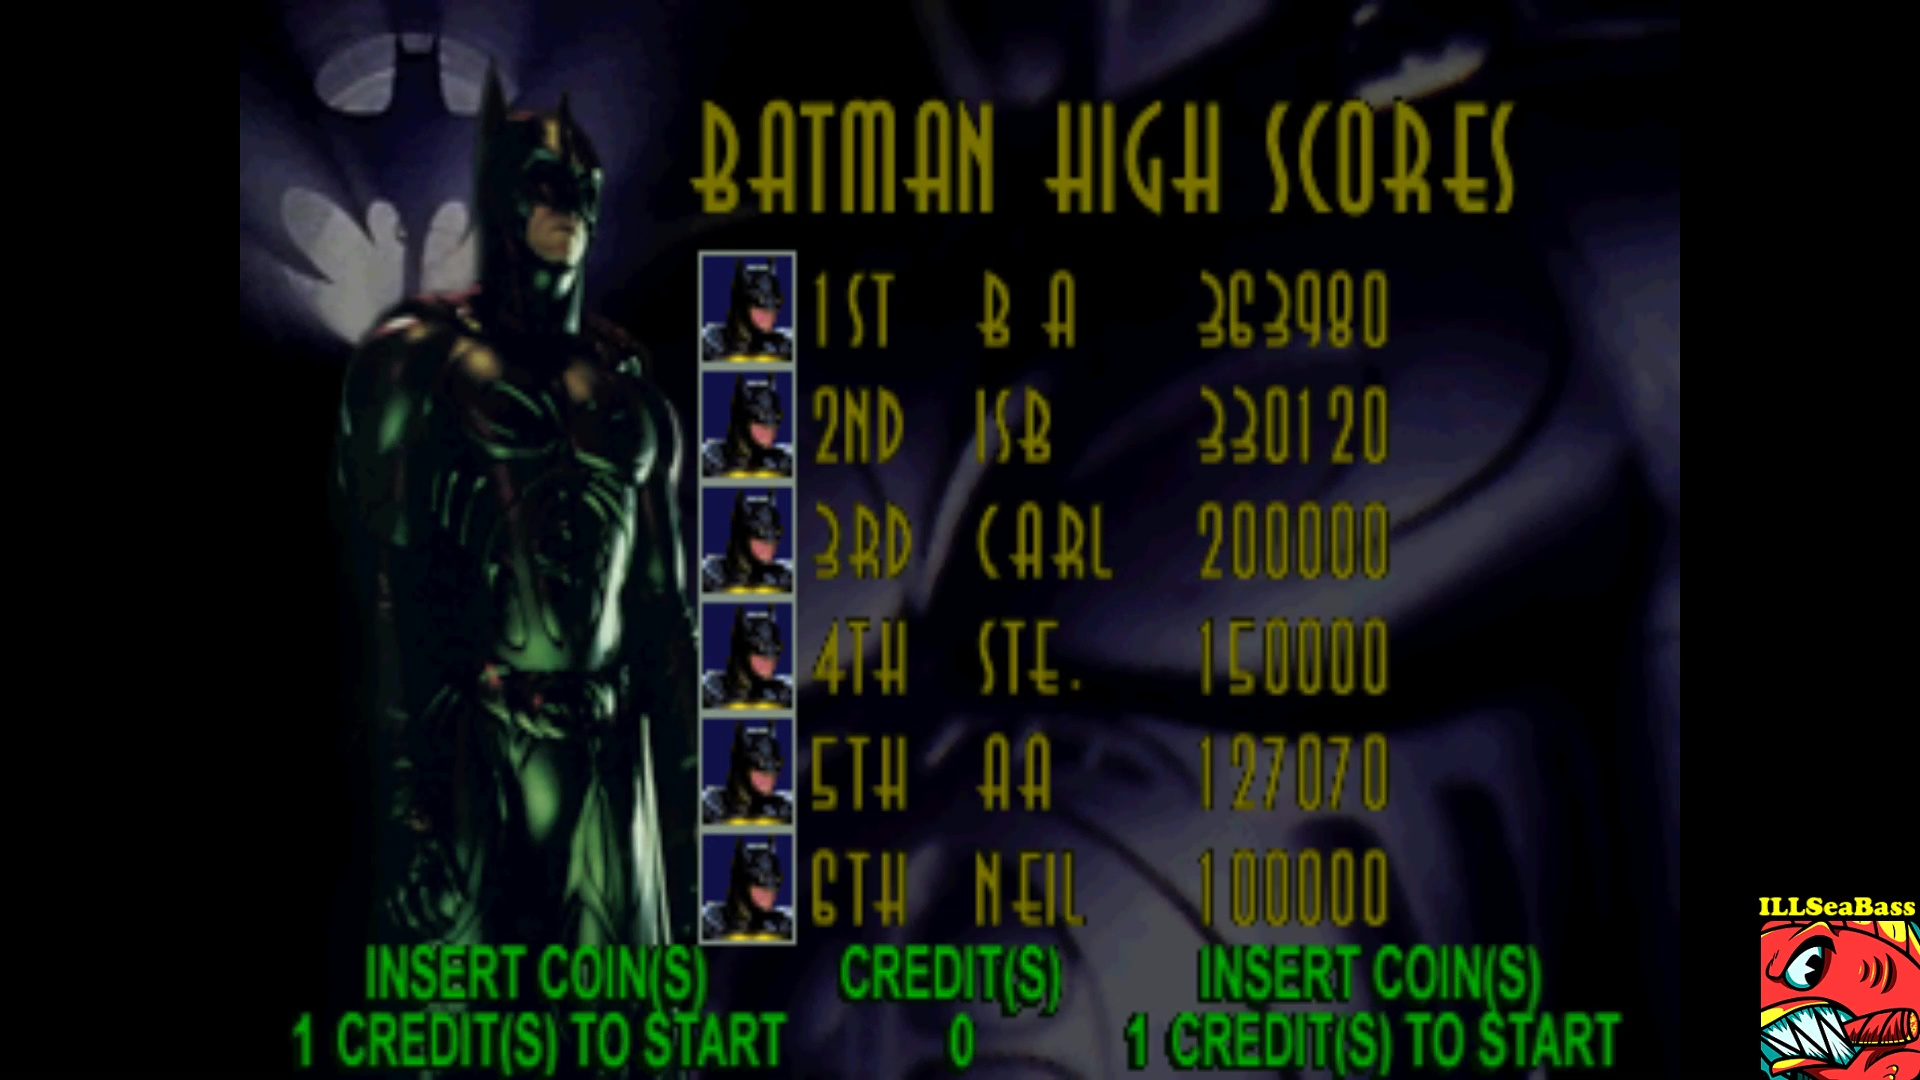 ILLSeaBass: Batman Forever [batmanfr] (Arcade Emulated / M.A.M.E.) 330,120 points on 2017-10-29 19:37:48